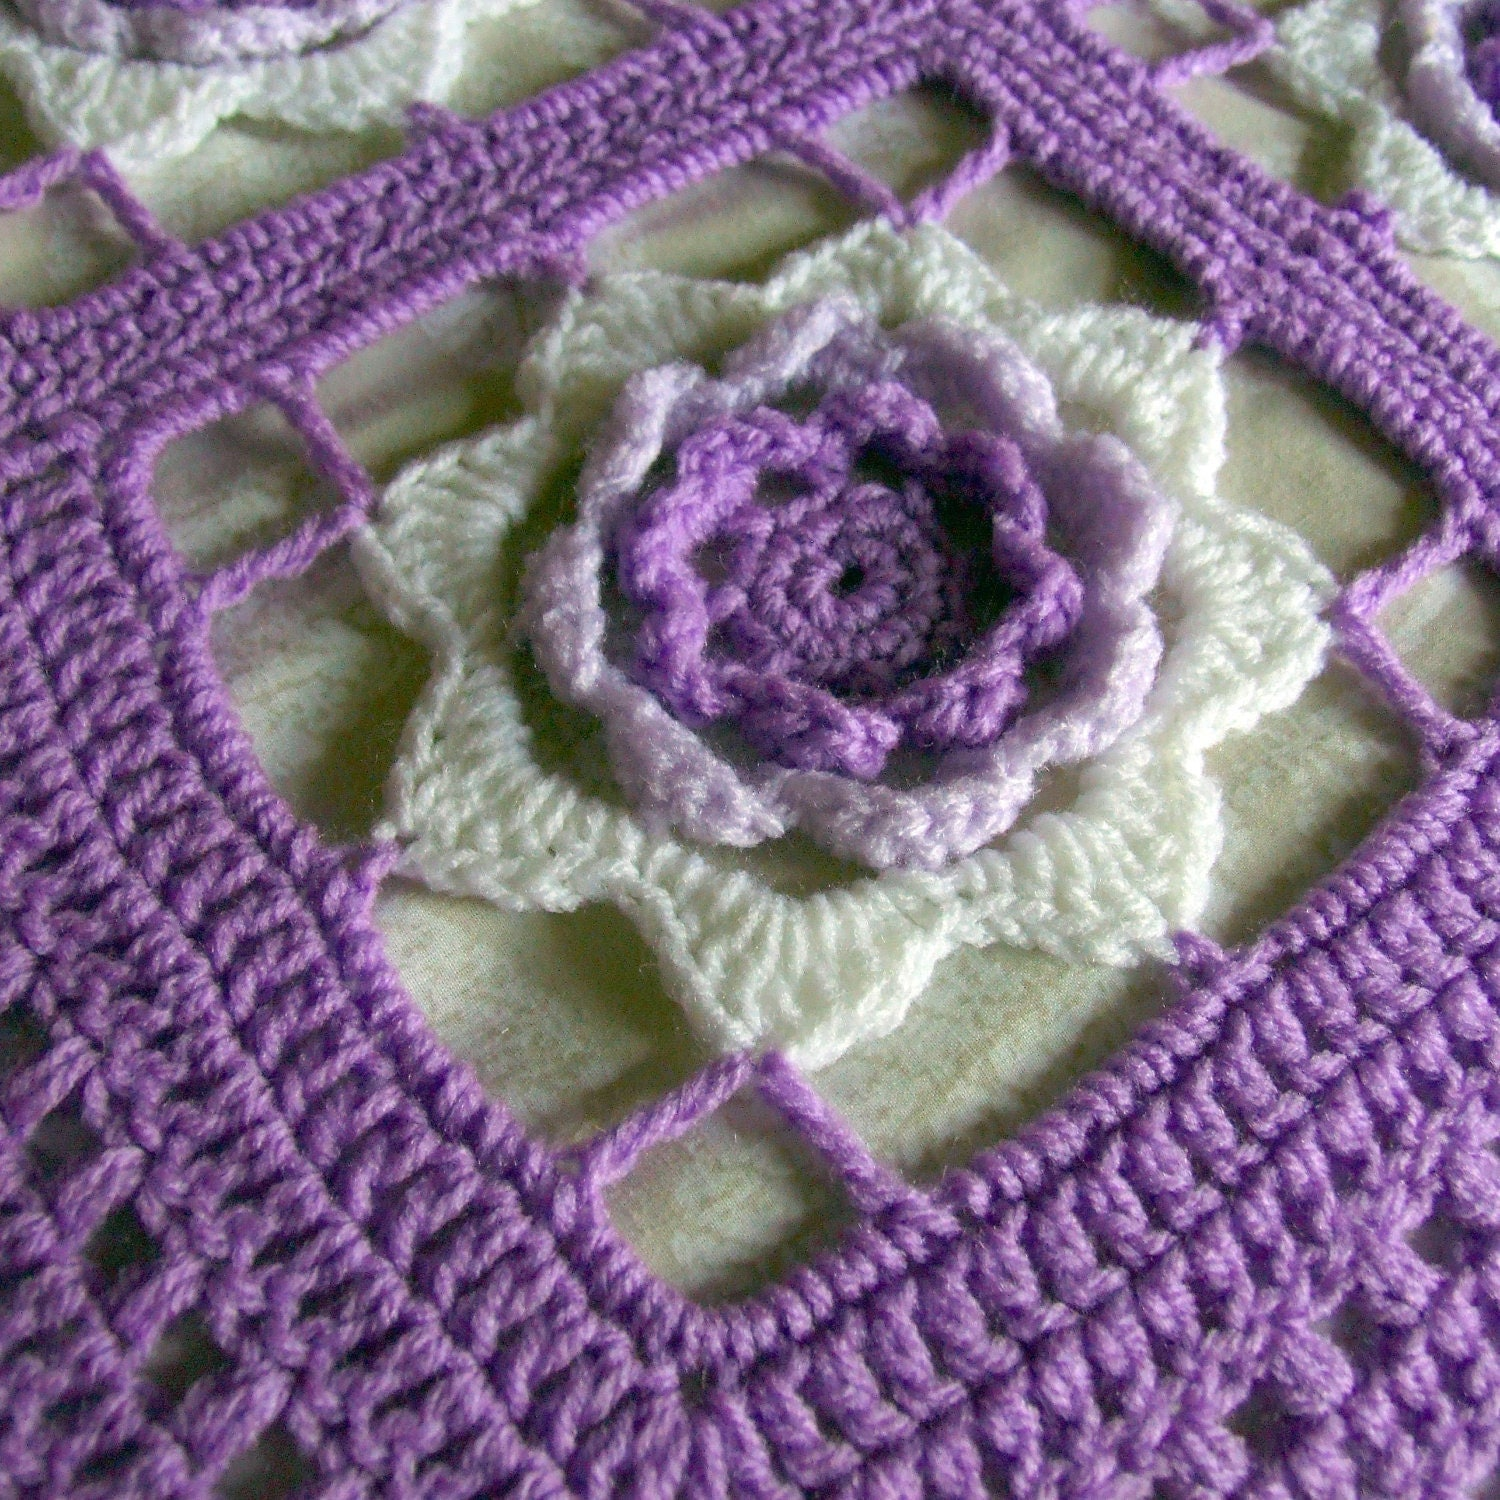 video crochet pattern central 3 days ago ... Free, online hats crochet ...